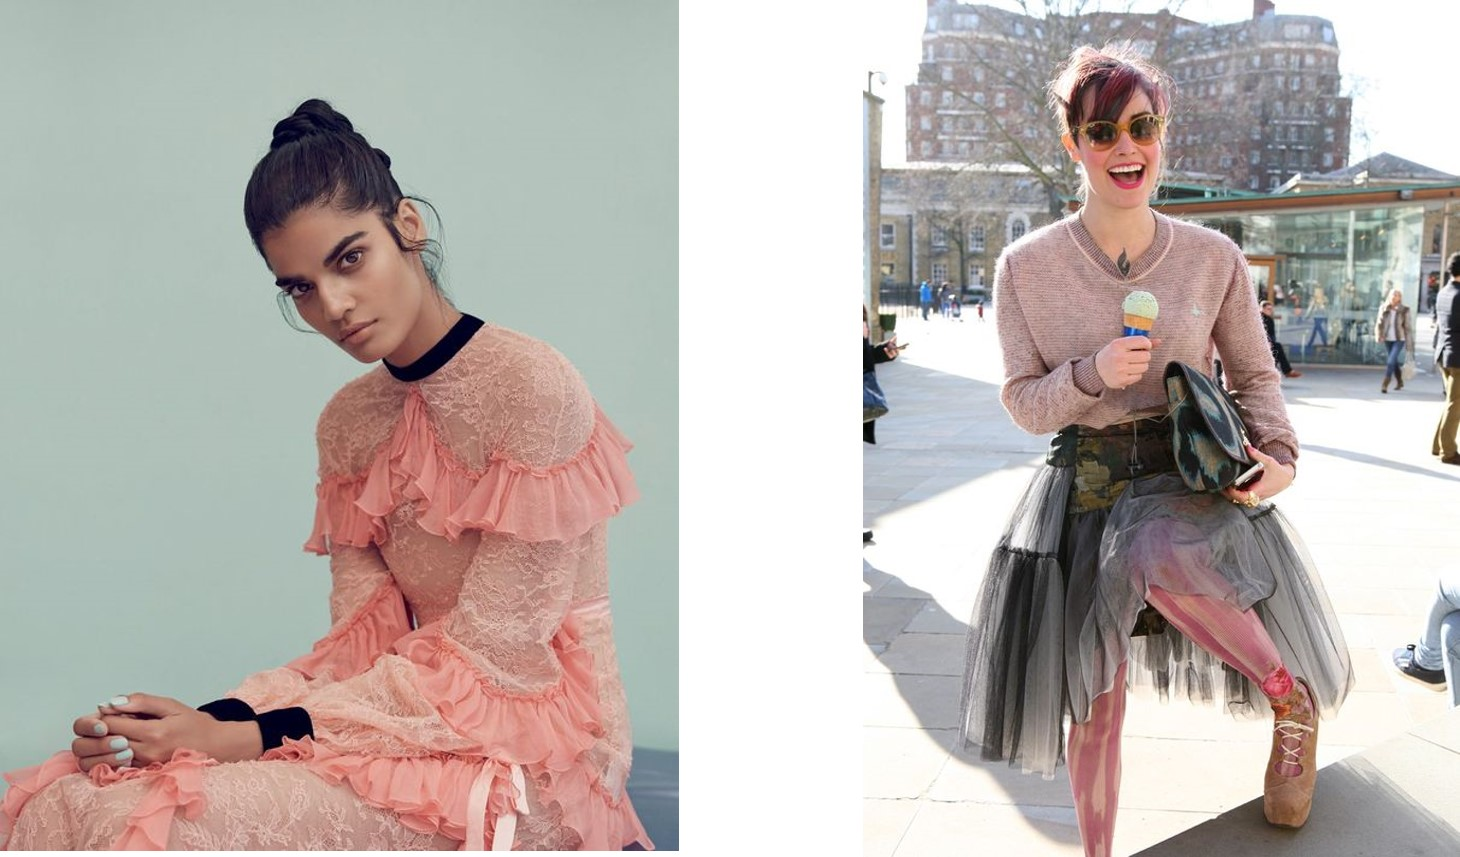 Street fashion in New York 2013 – Fabric tulle for New York street fashion